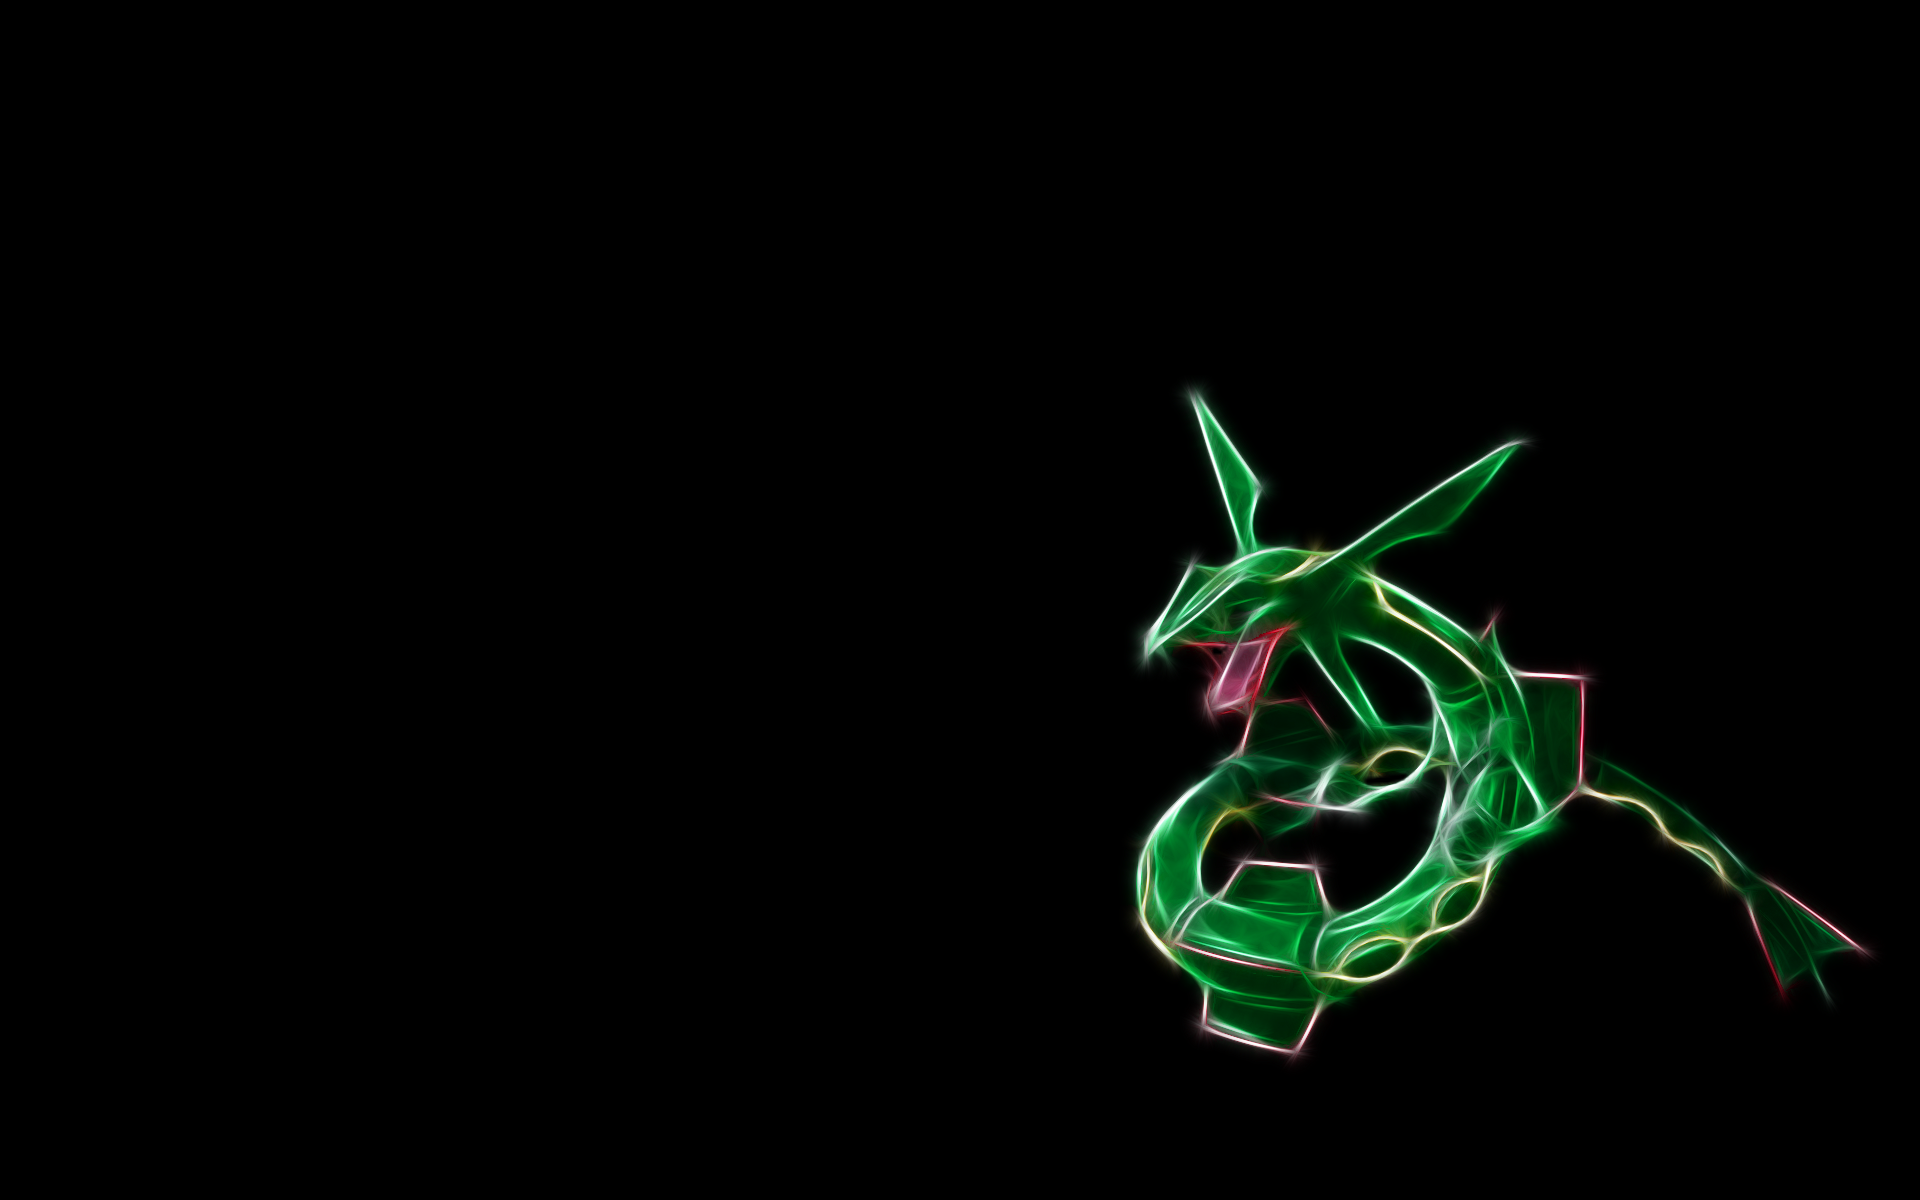 emerald rayquaza wallpapers - photo #10